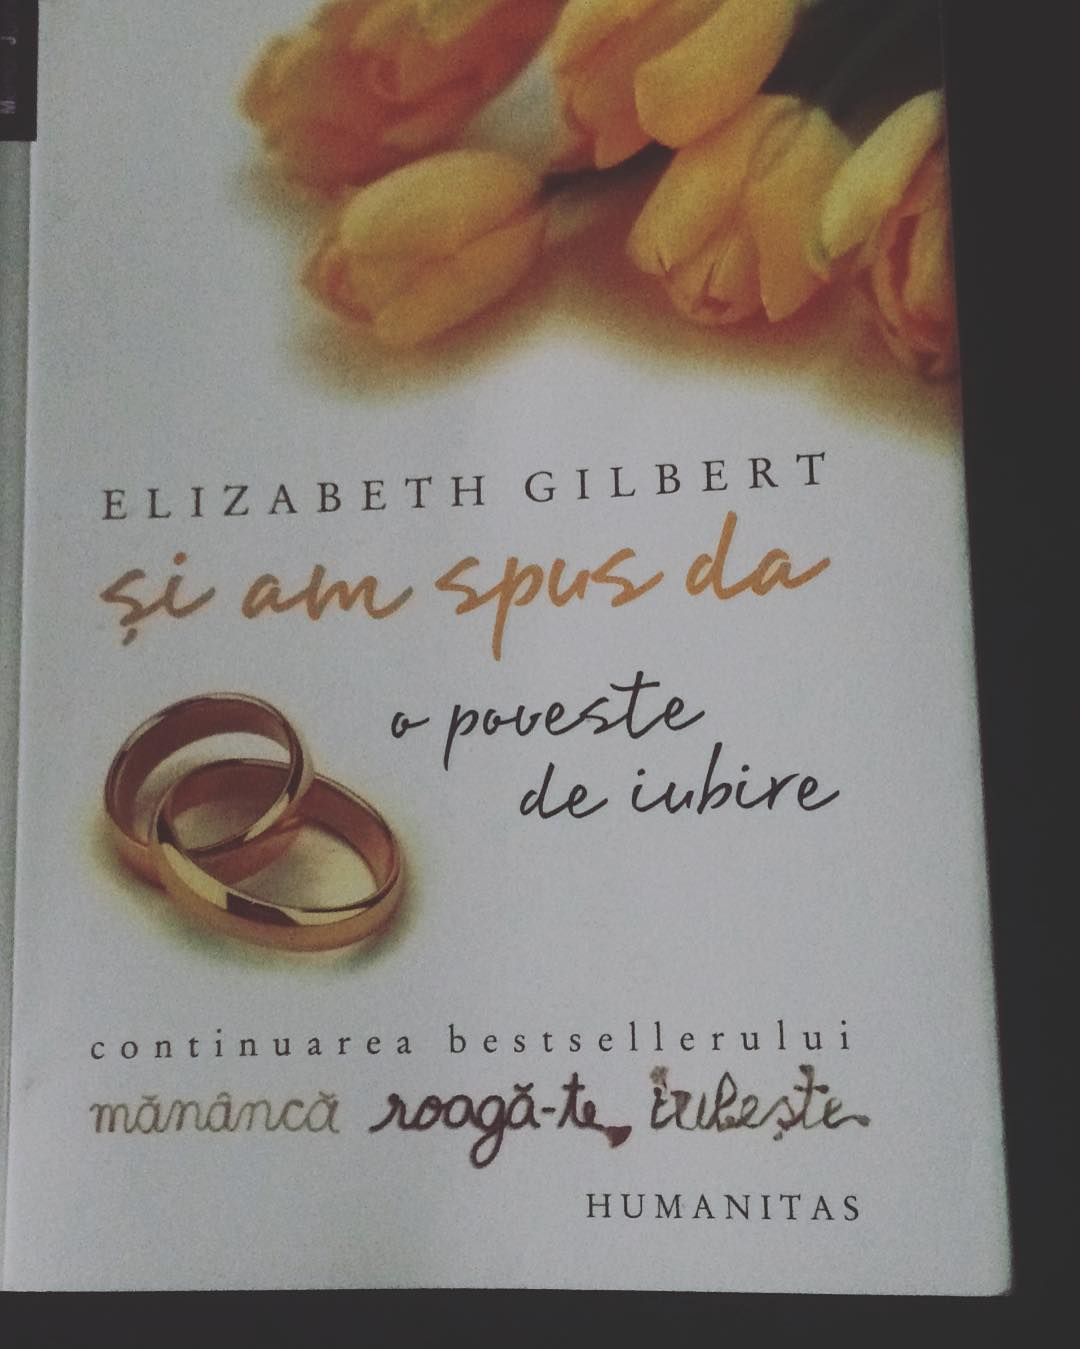 Lectura de inceput beginning commitment elizabethgilbert loveandmarriage isaidyes couple family